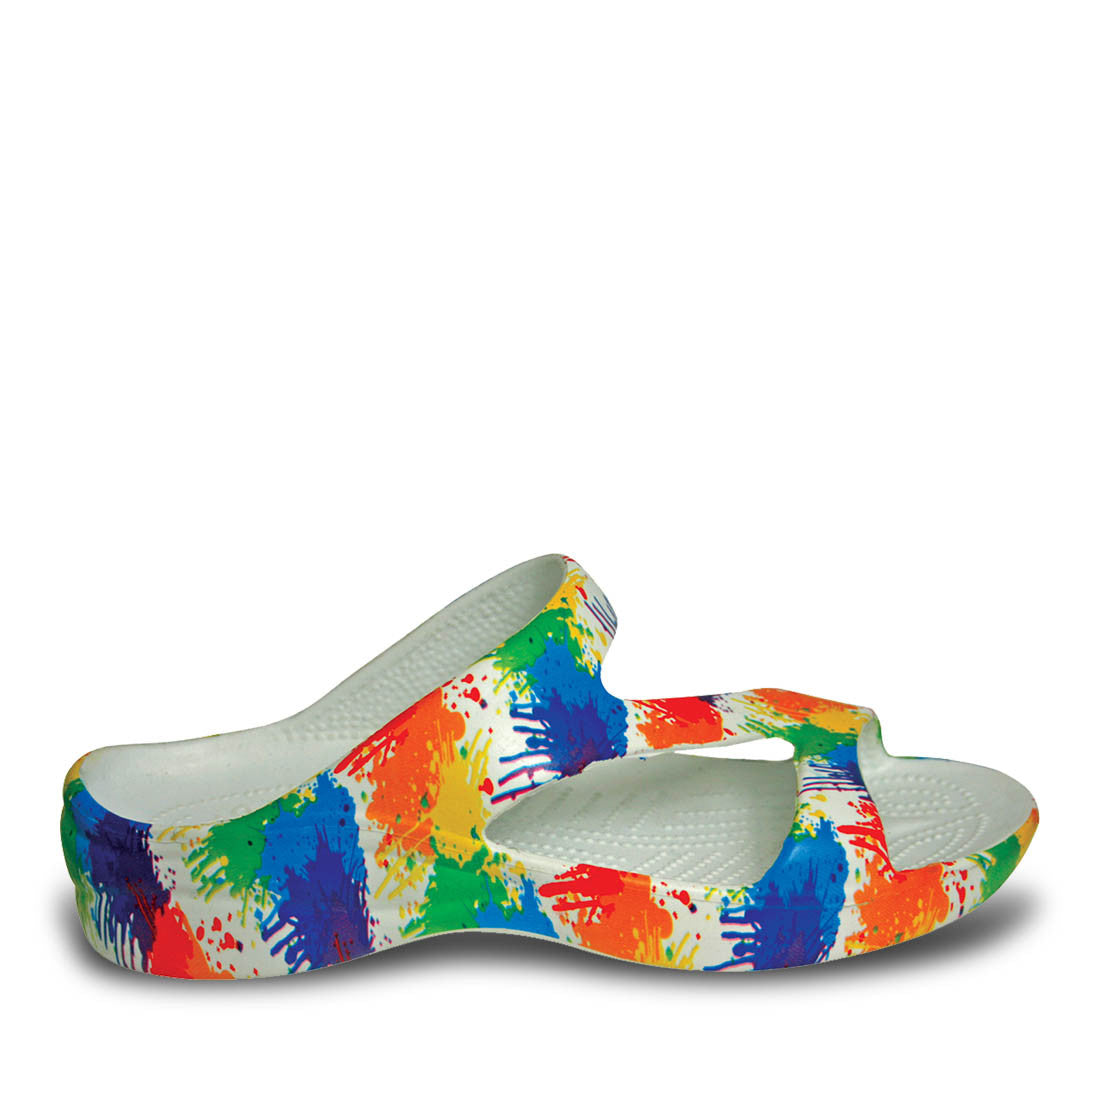 Image of Kids' Loudmouth Z Sandals - Drop Cloth